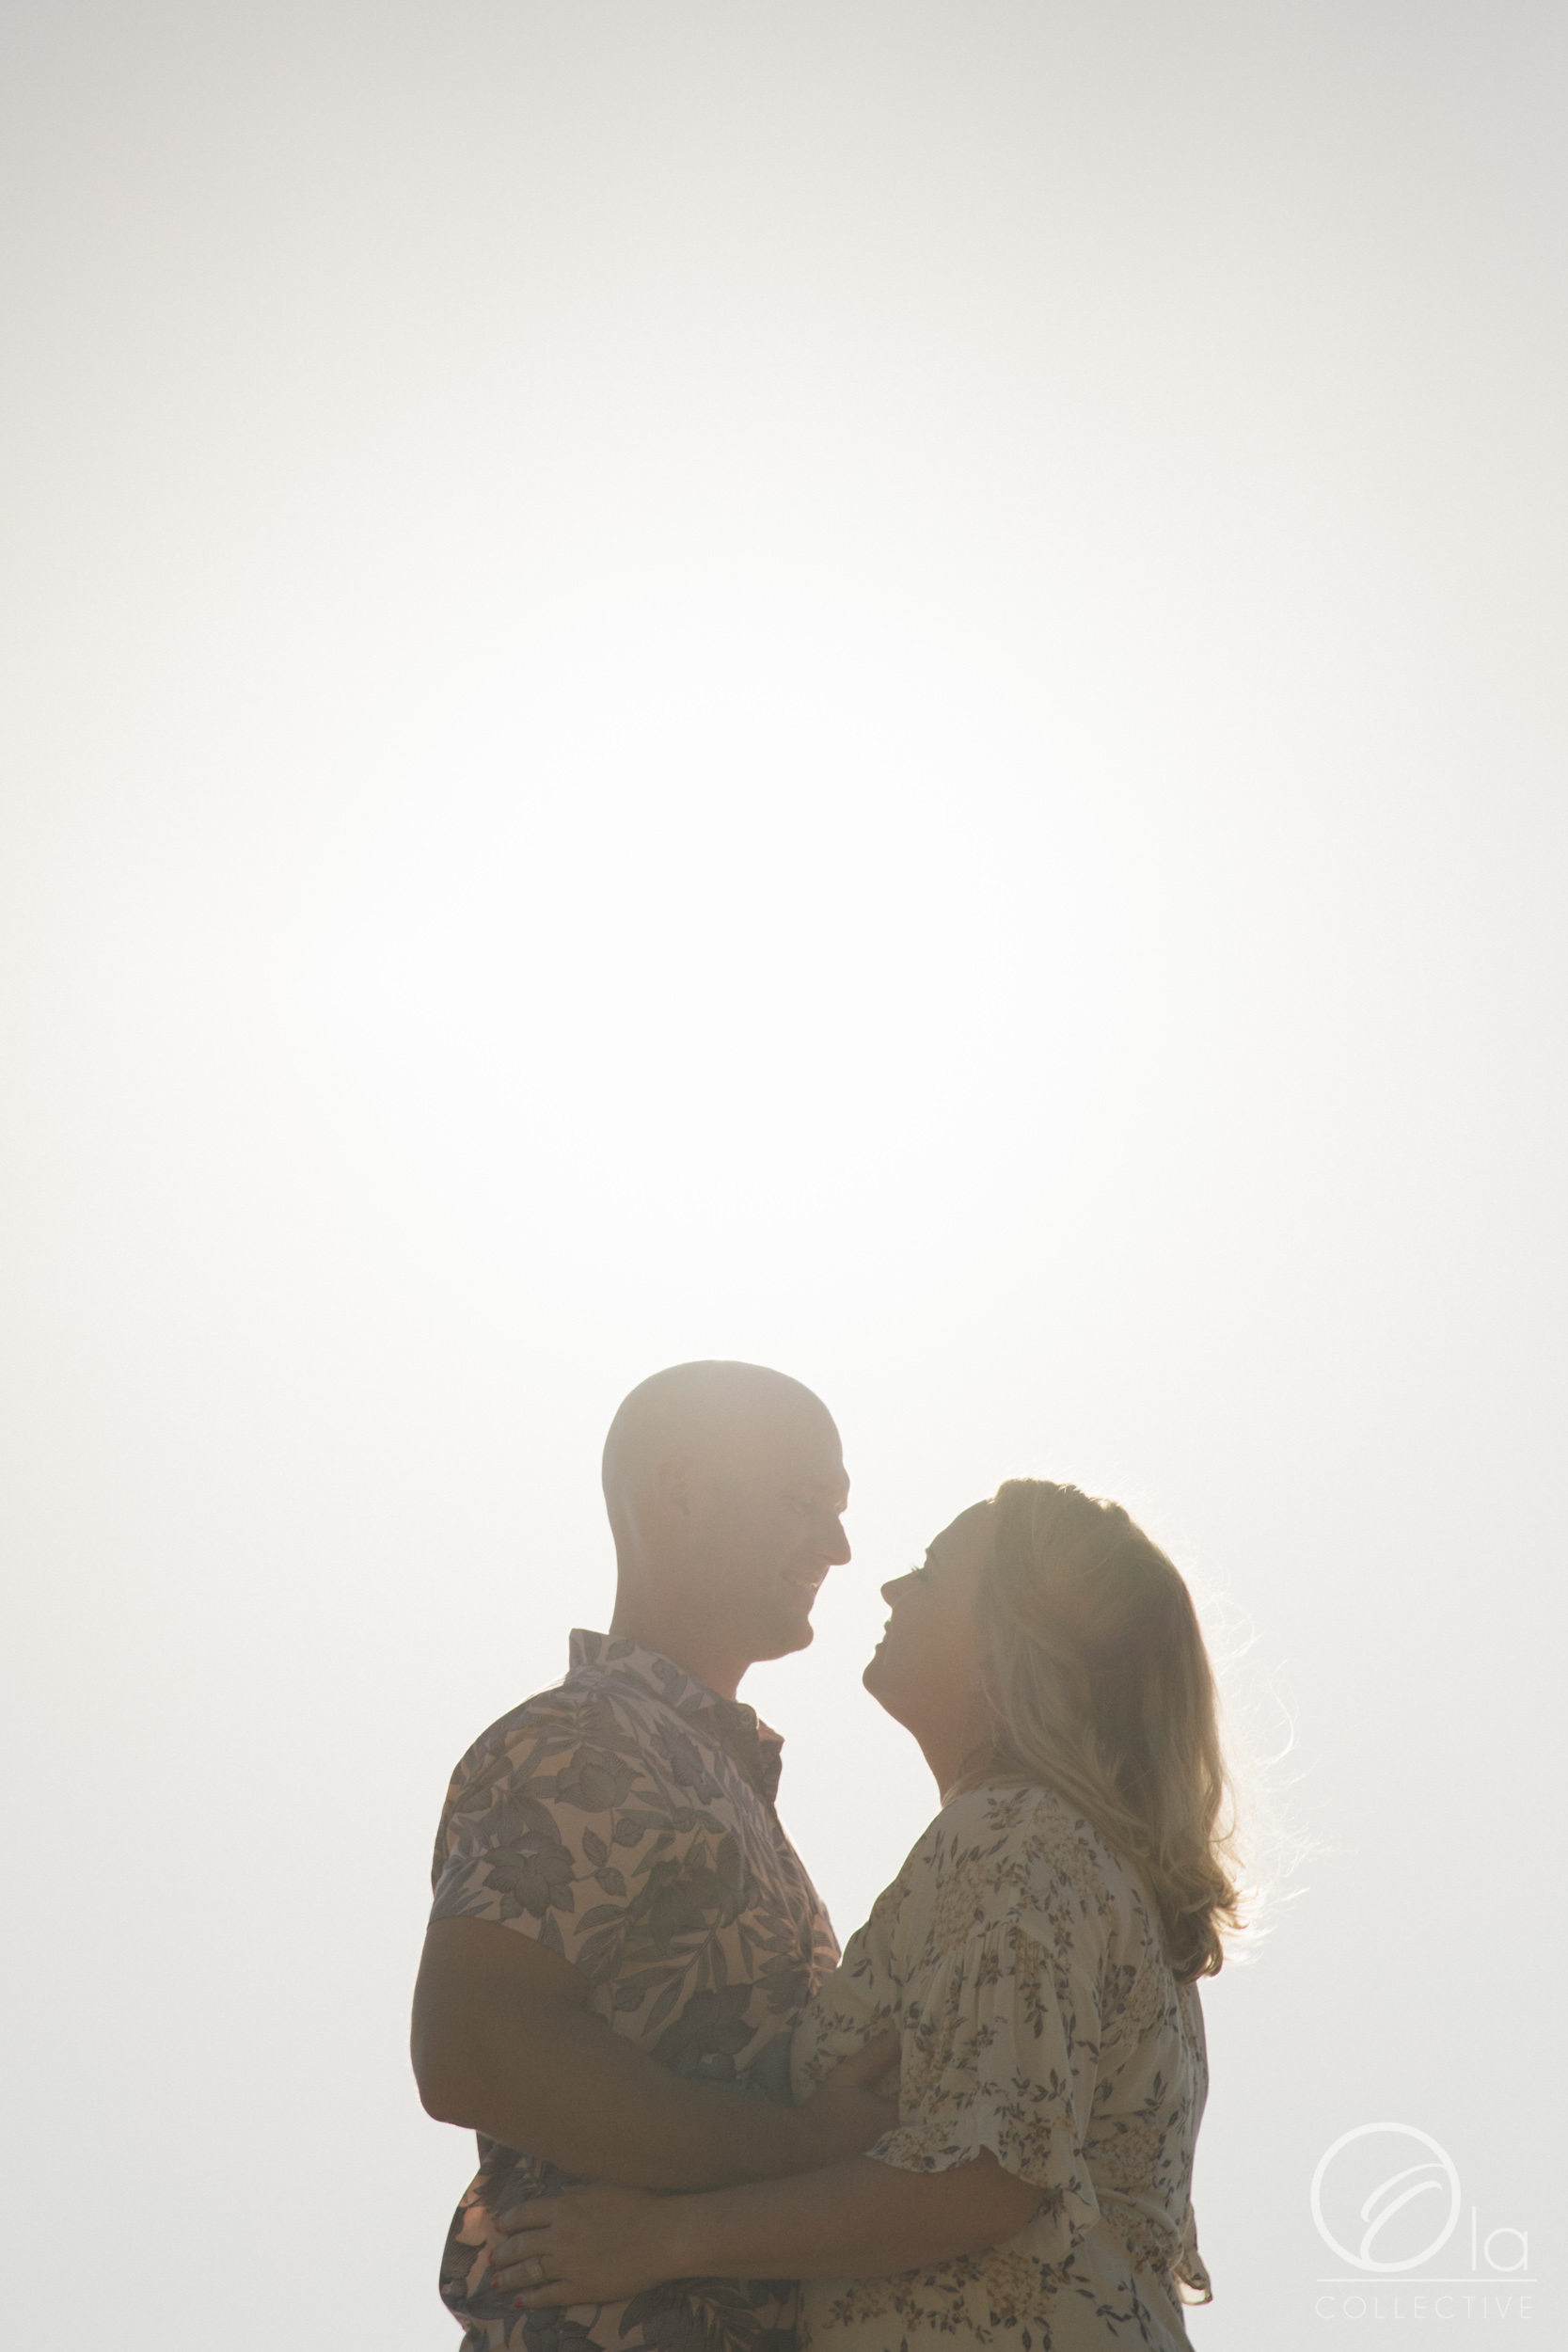 Ko-Olina-Engagement-Photographer-Ola-Collective-25.jpg